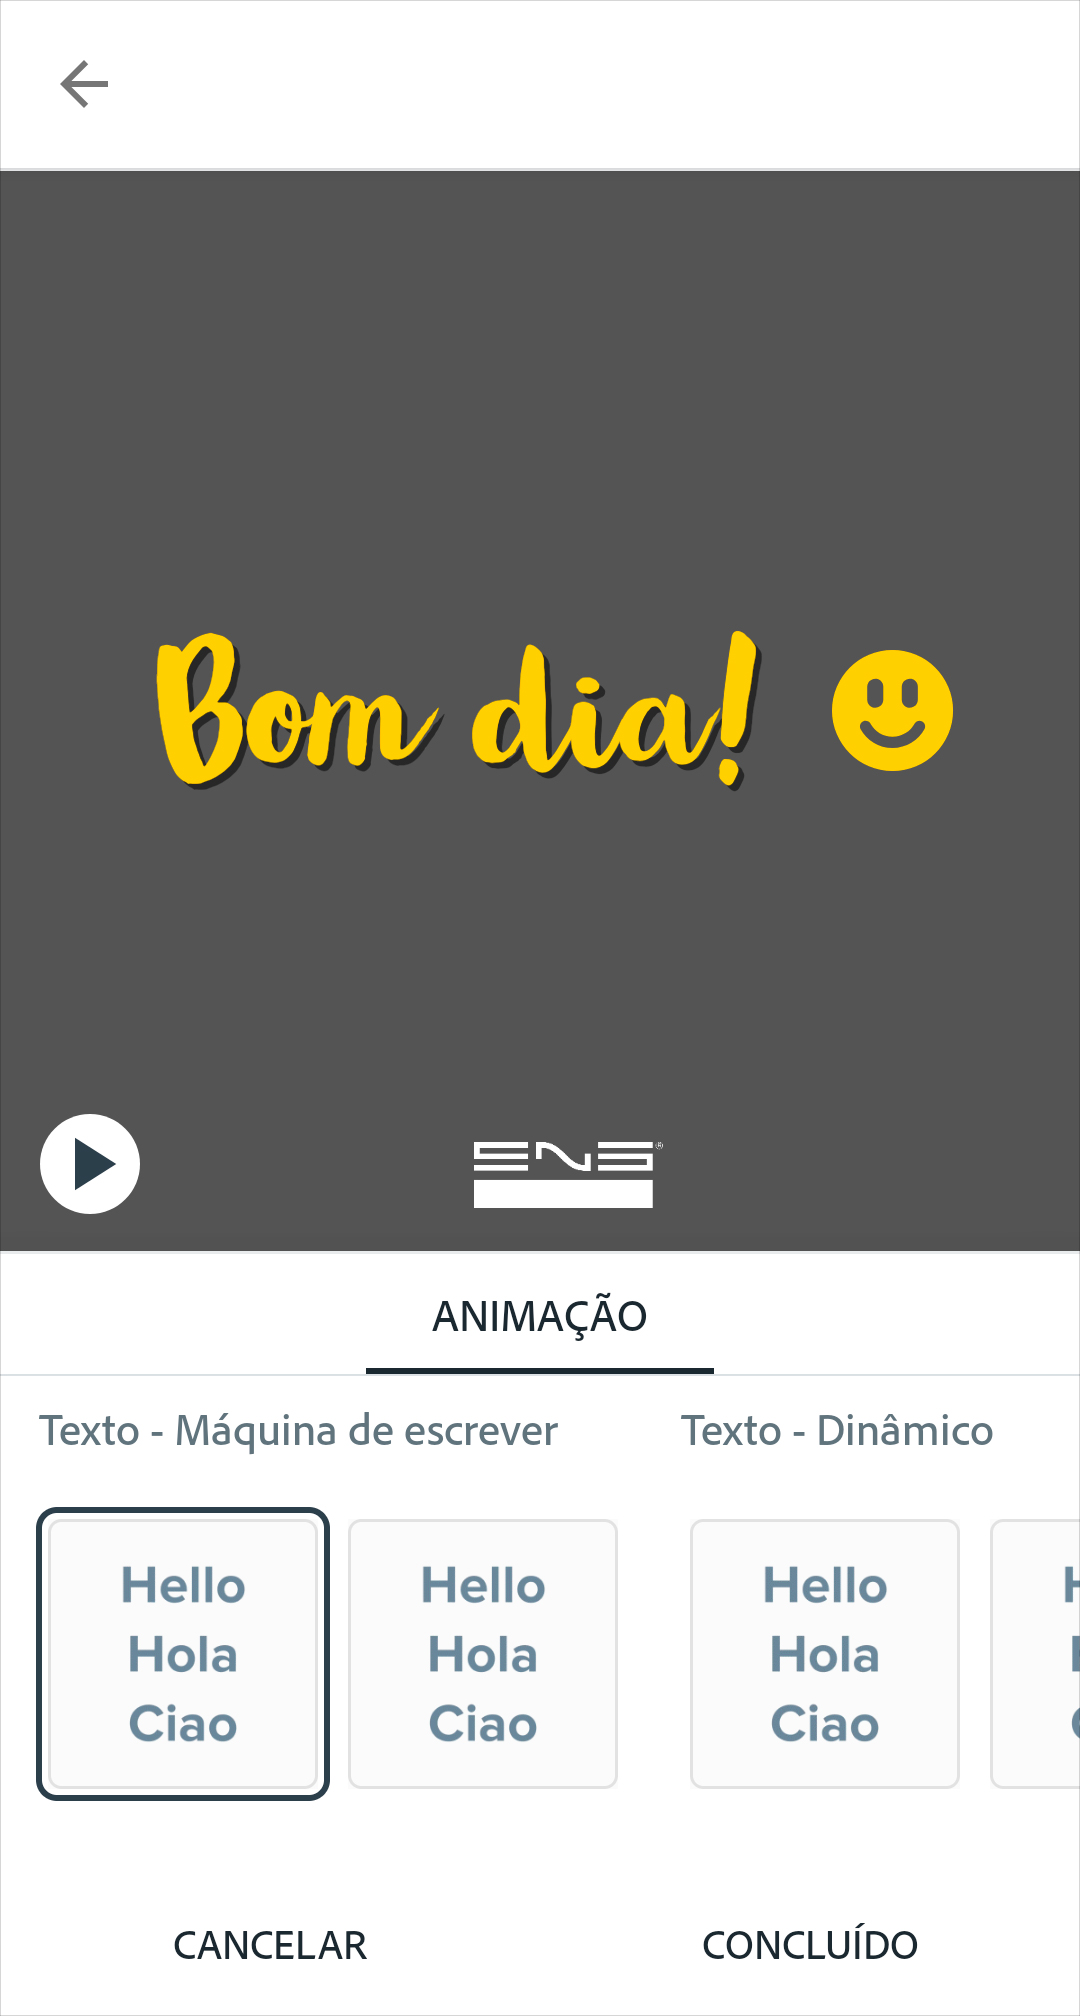 opcao-animacao-adobe-spark-post-eng-dtp-multimidia